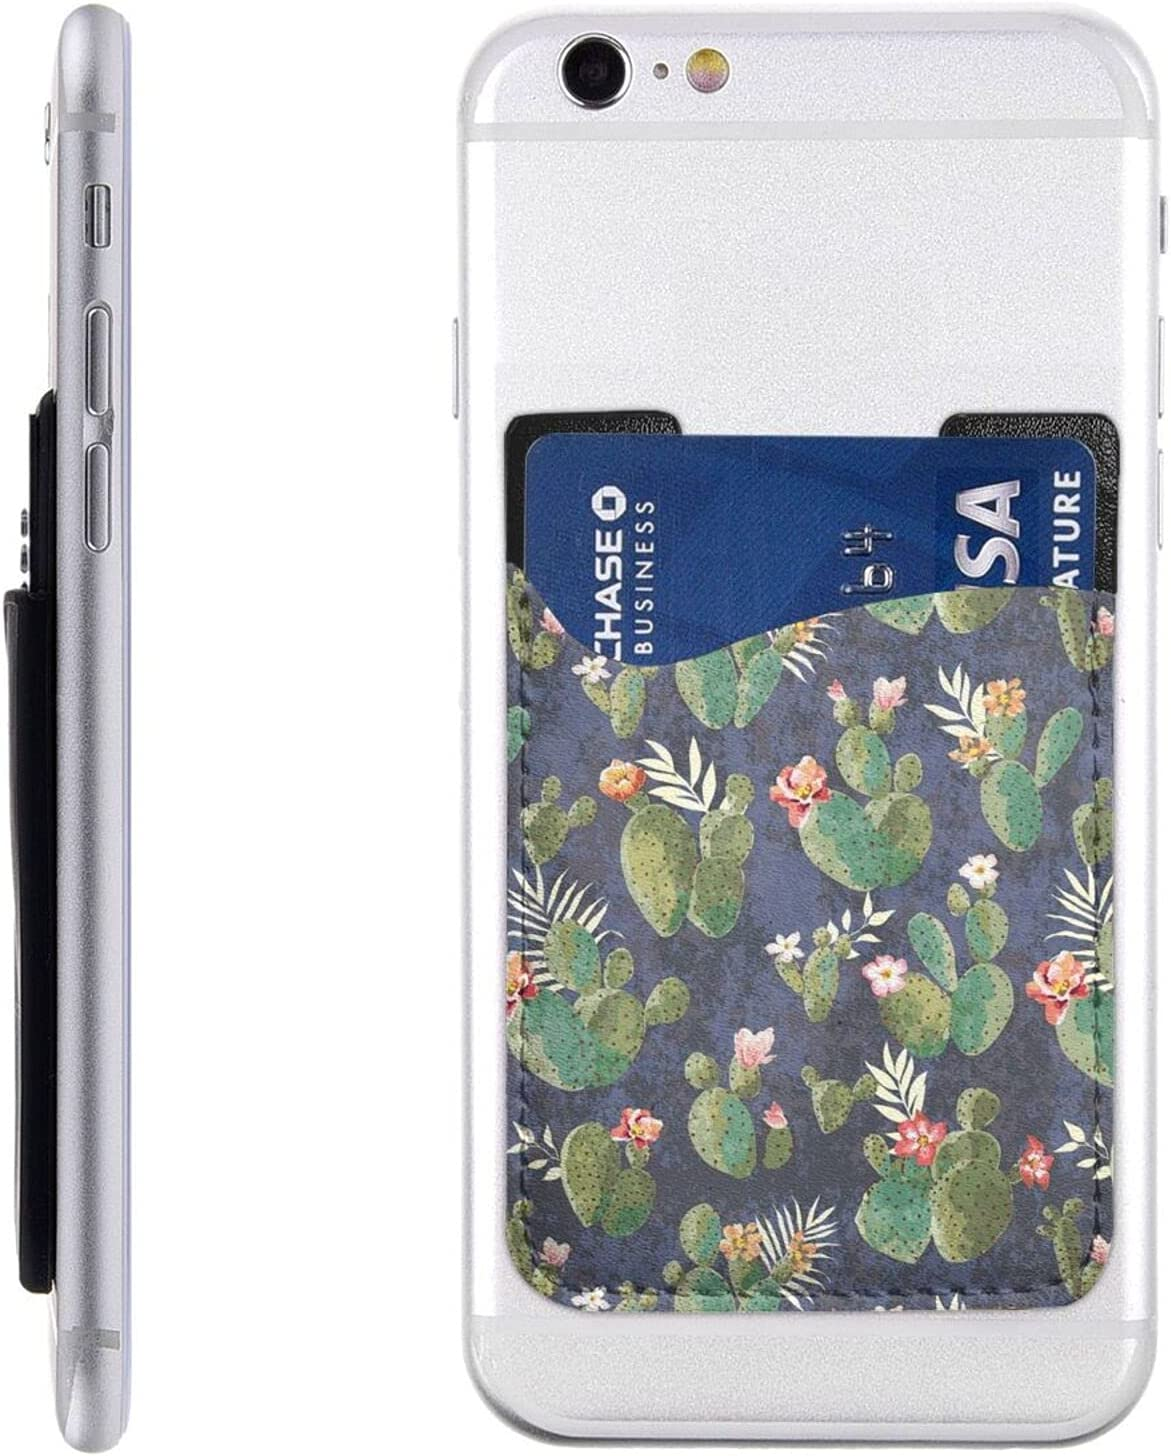 Watercolour Cactus Phone Card Holder Wa Online OFFicial shop limited product Stick Cell On